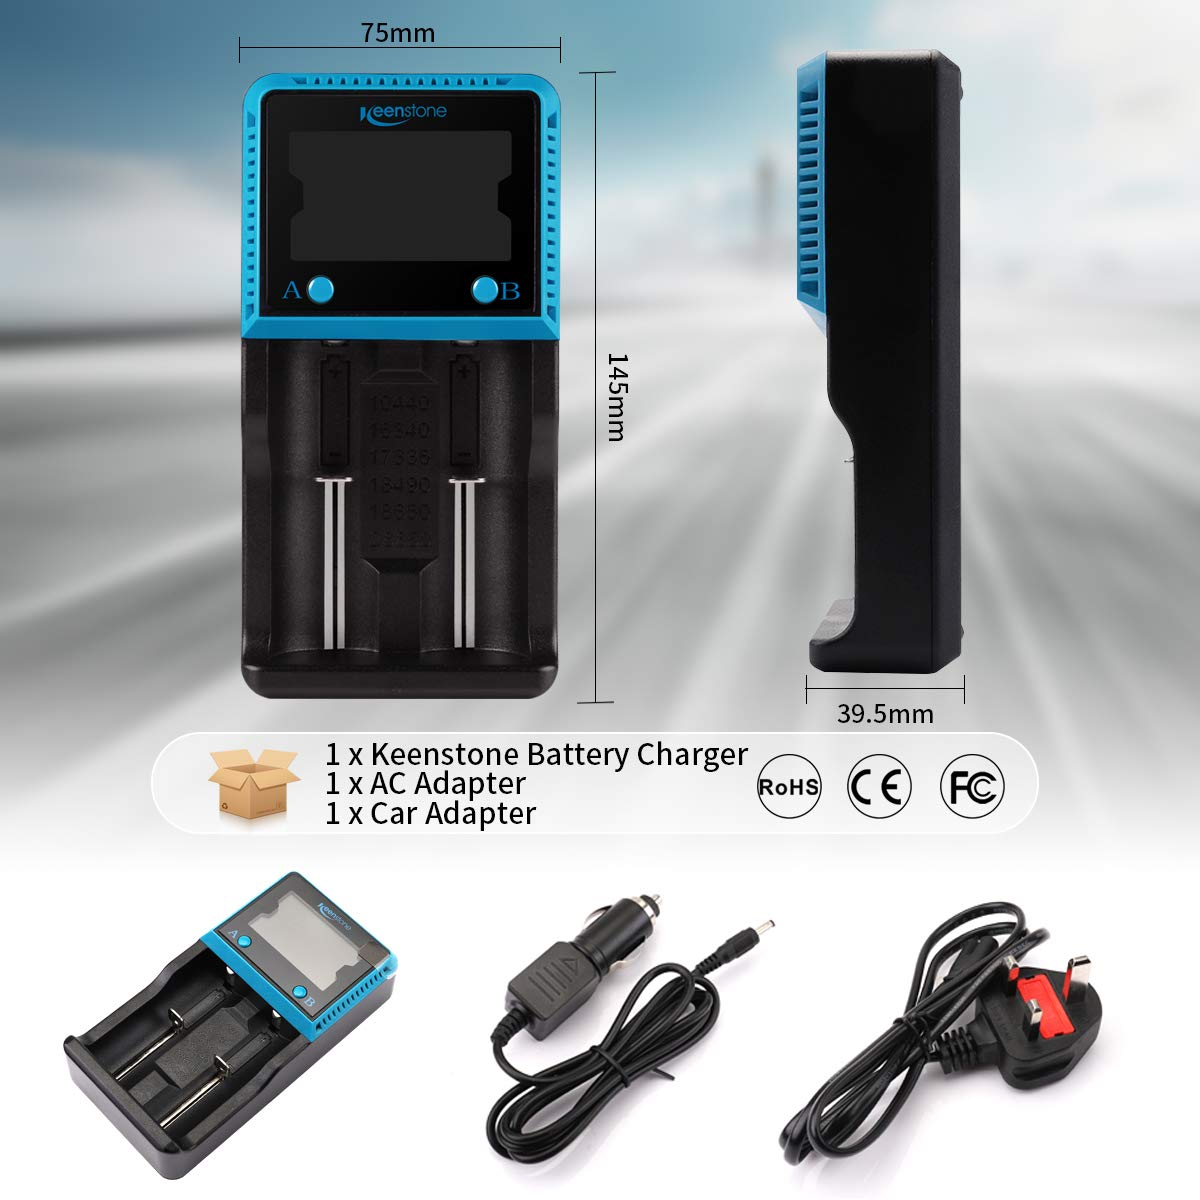 Keenstone 18650 Battery Charger UK, Dual 18650 Charger with LCD Screen for Ni-MH   Ni-Cd   Lifepo4   Li-ion ICR INR IMR Rechargeable Batteries AA AAA 10440 14500 16340 18560 26650 (2 Slot)